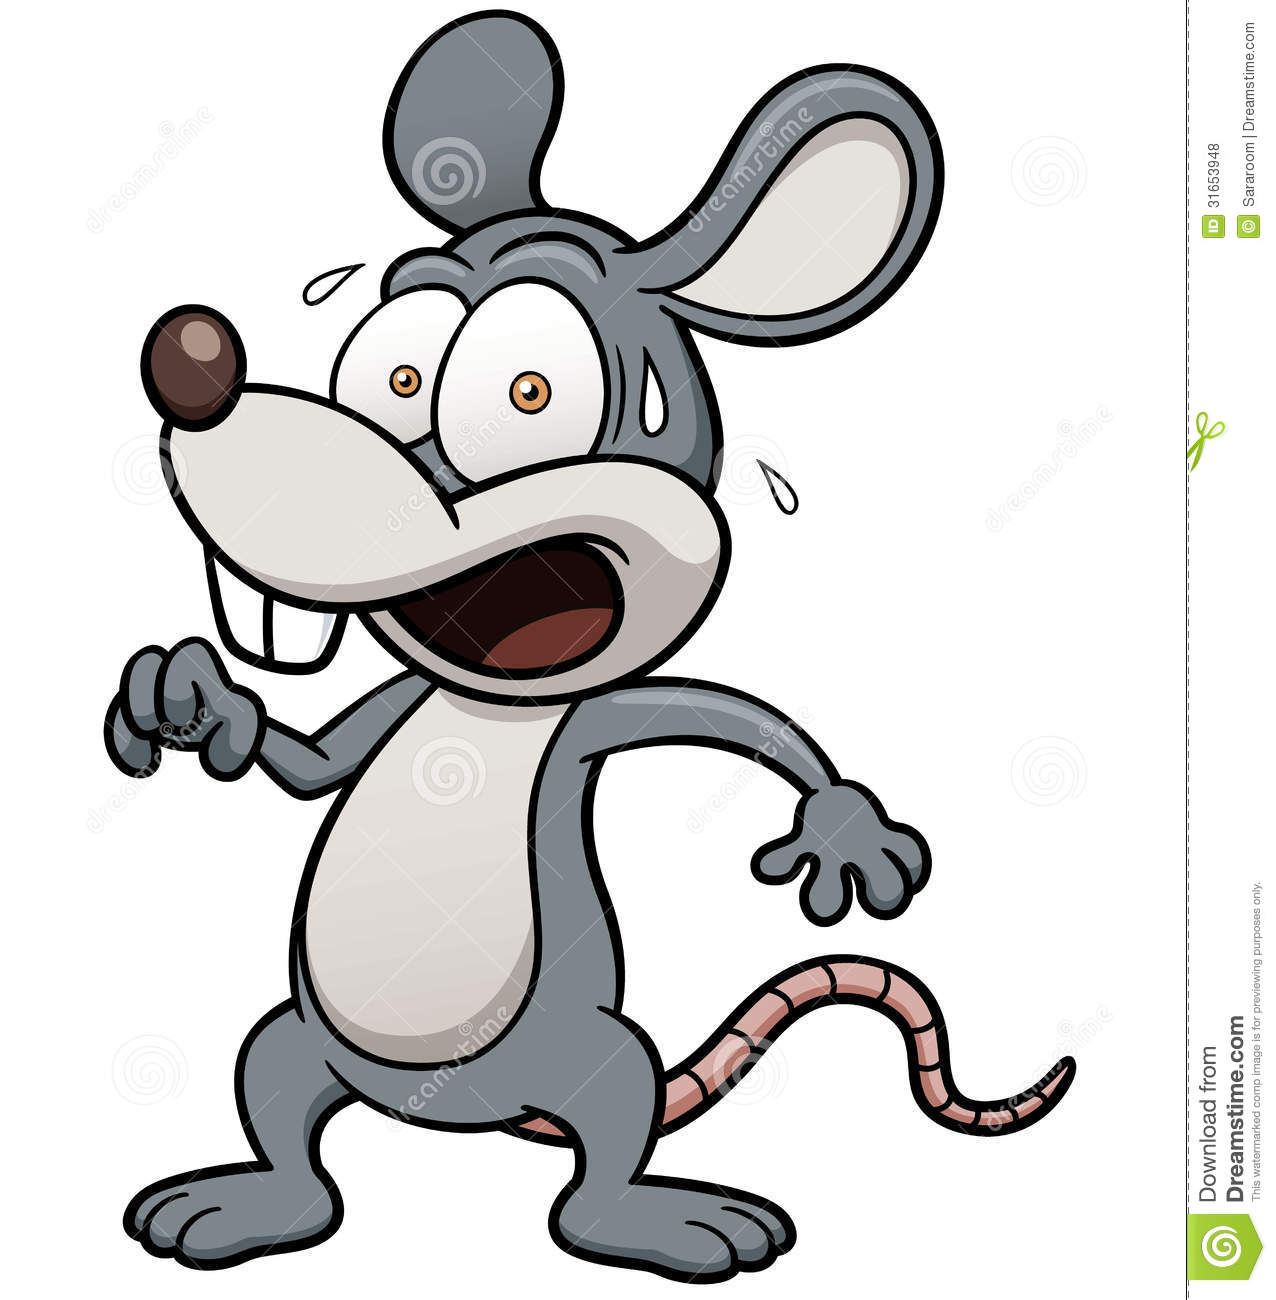 Mouse clipart scared for free download and use images in.